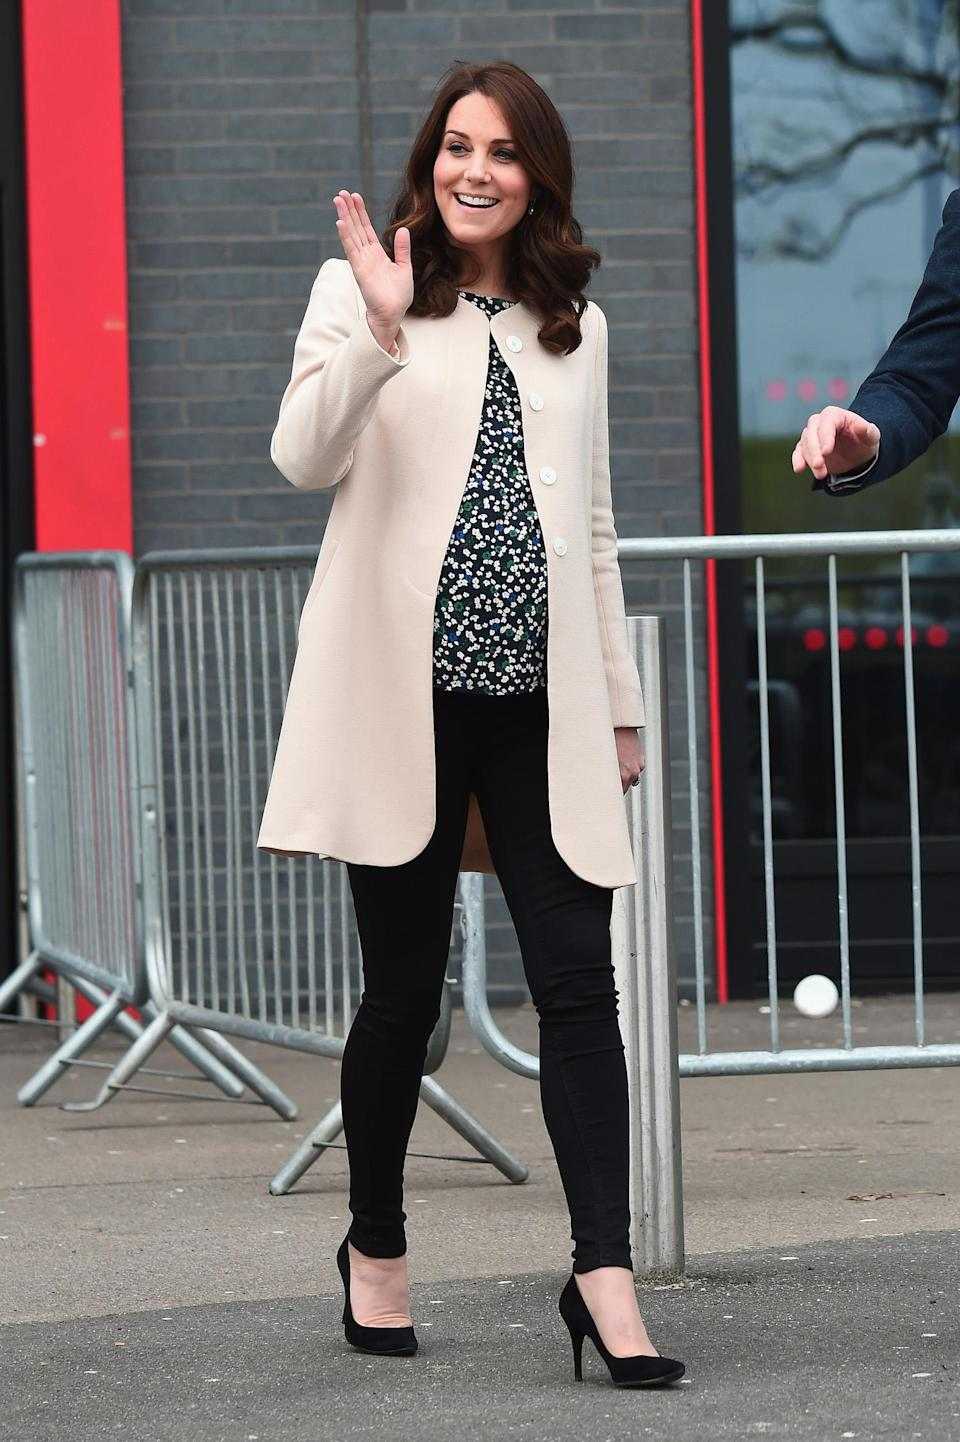 <p>Catherine, Duchess of Cambridge, wearing a simple cream coat, floral blouse, and skinny trousers at the Copperbox Arena on March 22, 2018, in London. (Photo: Getty Images) </p>